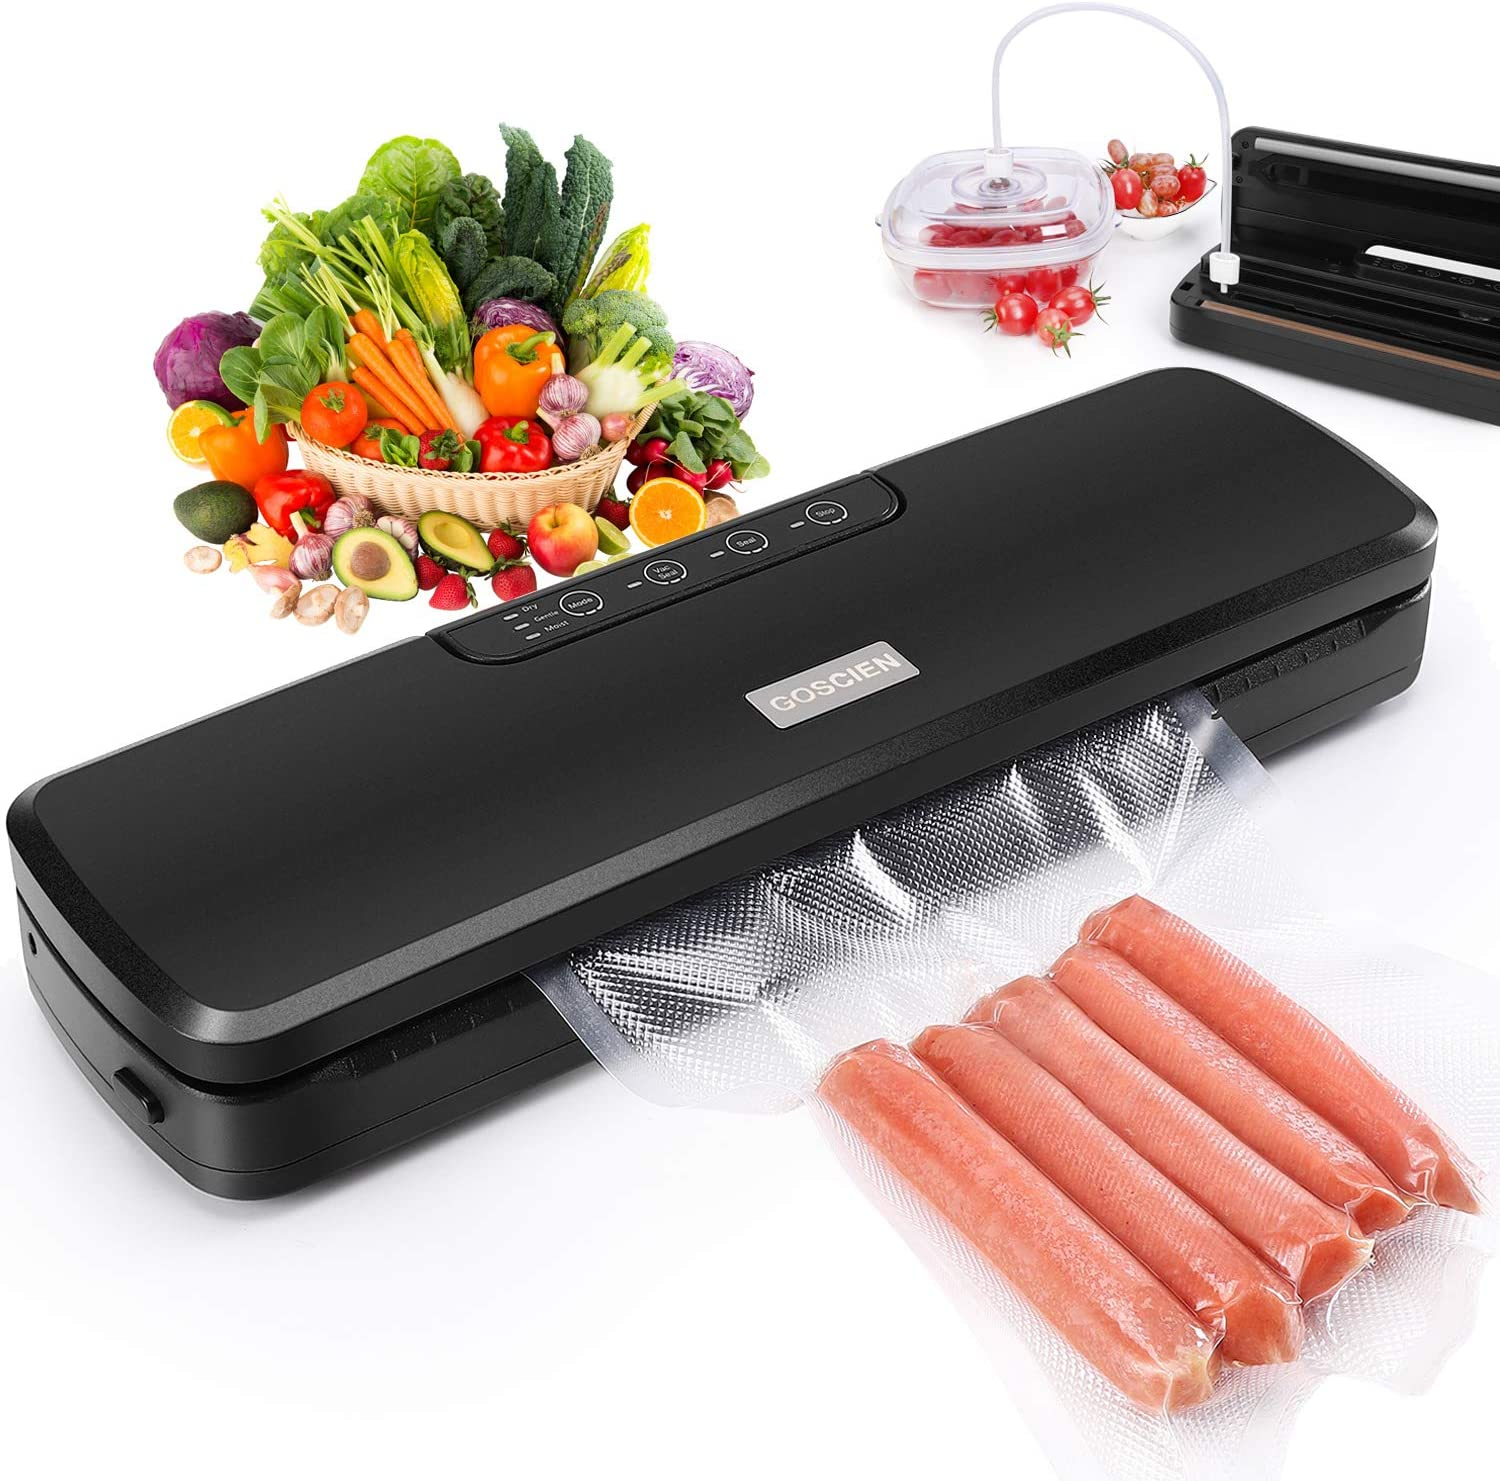 Vacuum Sealer Machine, GOSCIEN Food Saver with Dry & Moist Modes, Includes Built-in Cutter, Water Groove and Bags, For Sous Vide and Food Storage